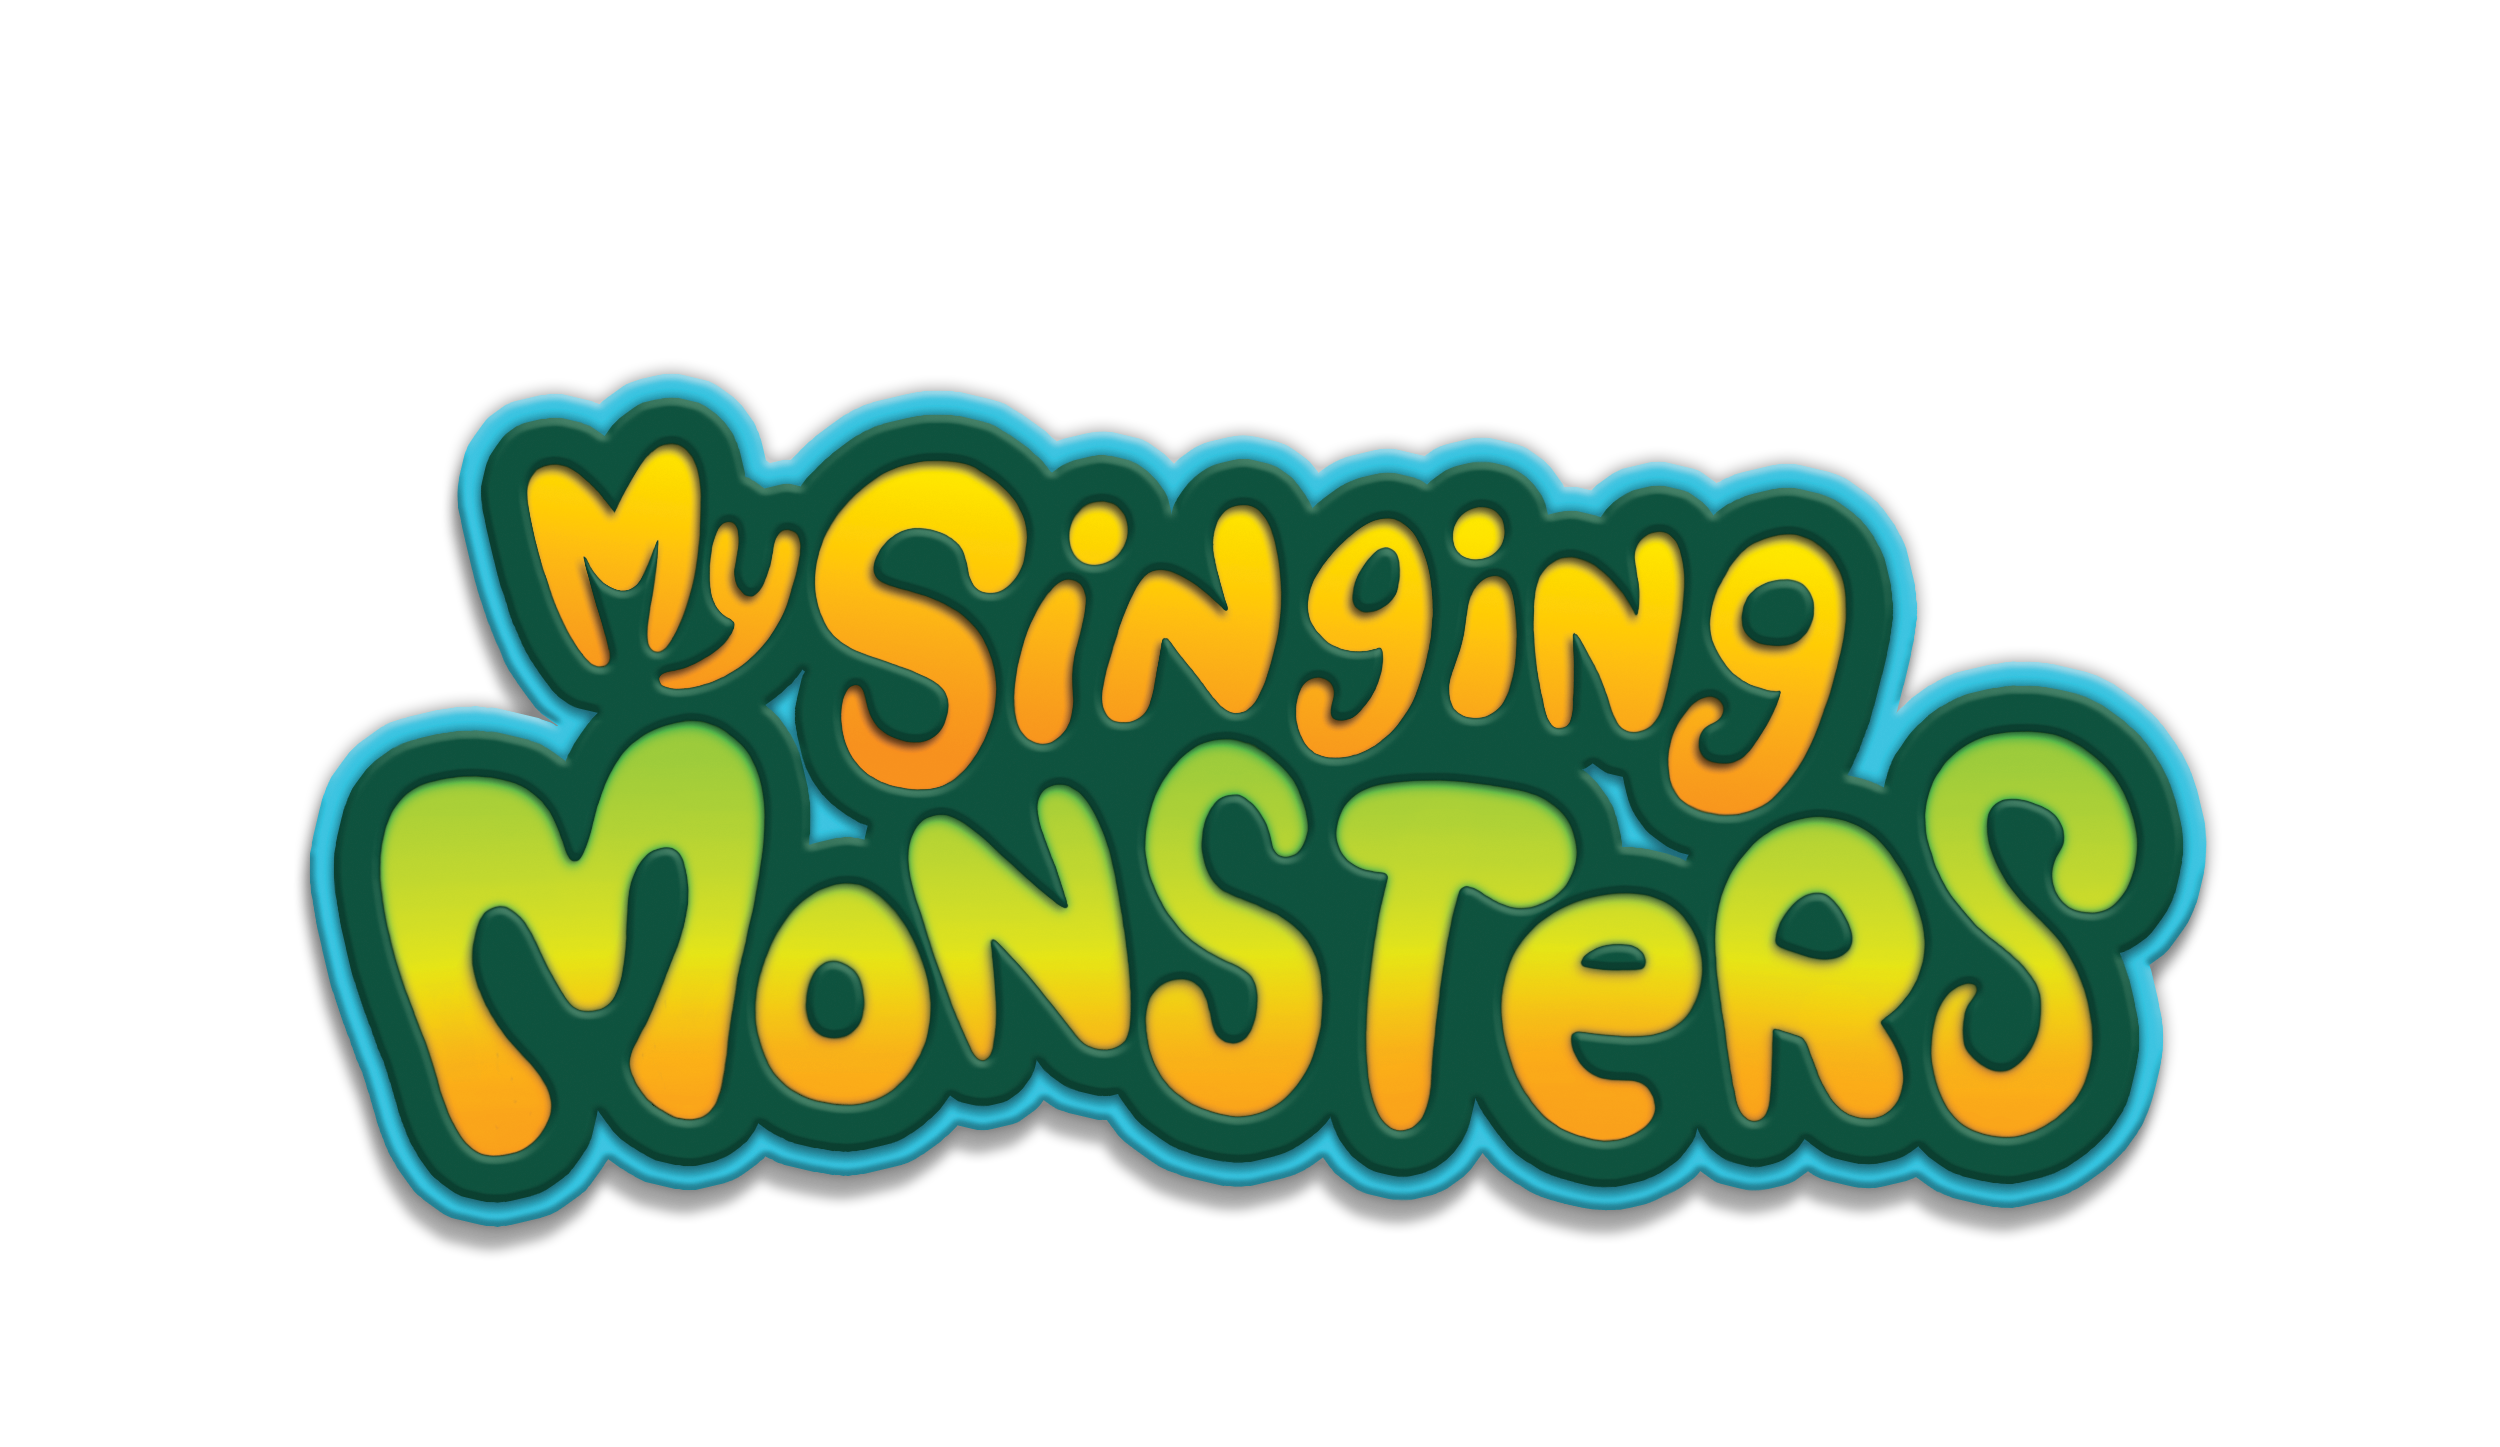 My Singing Monsters logo